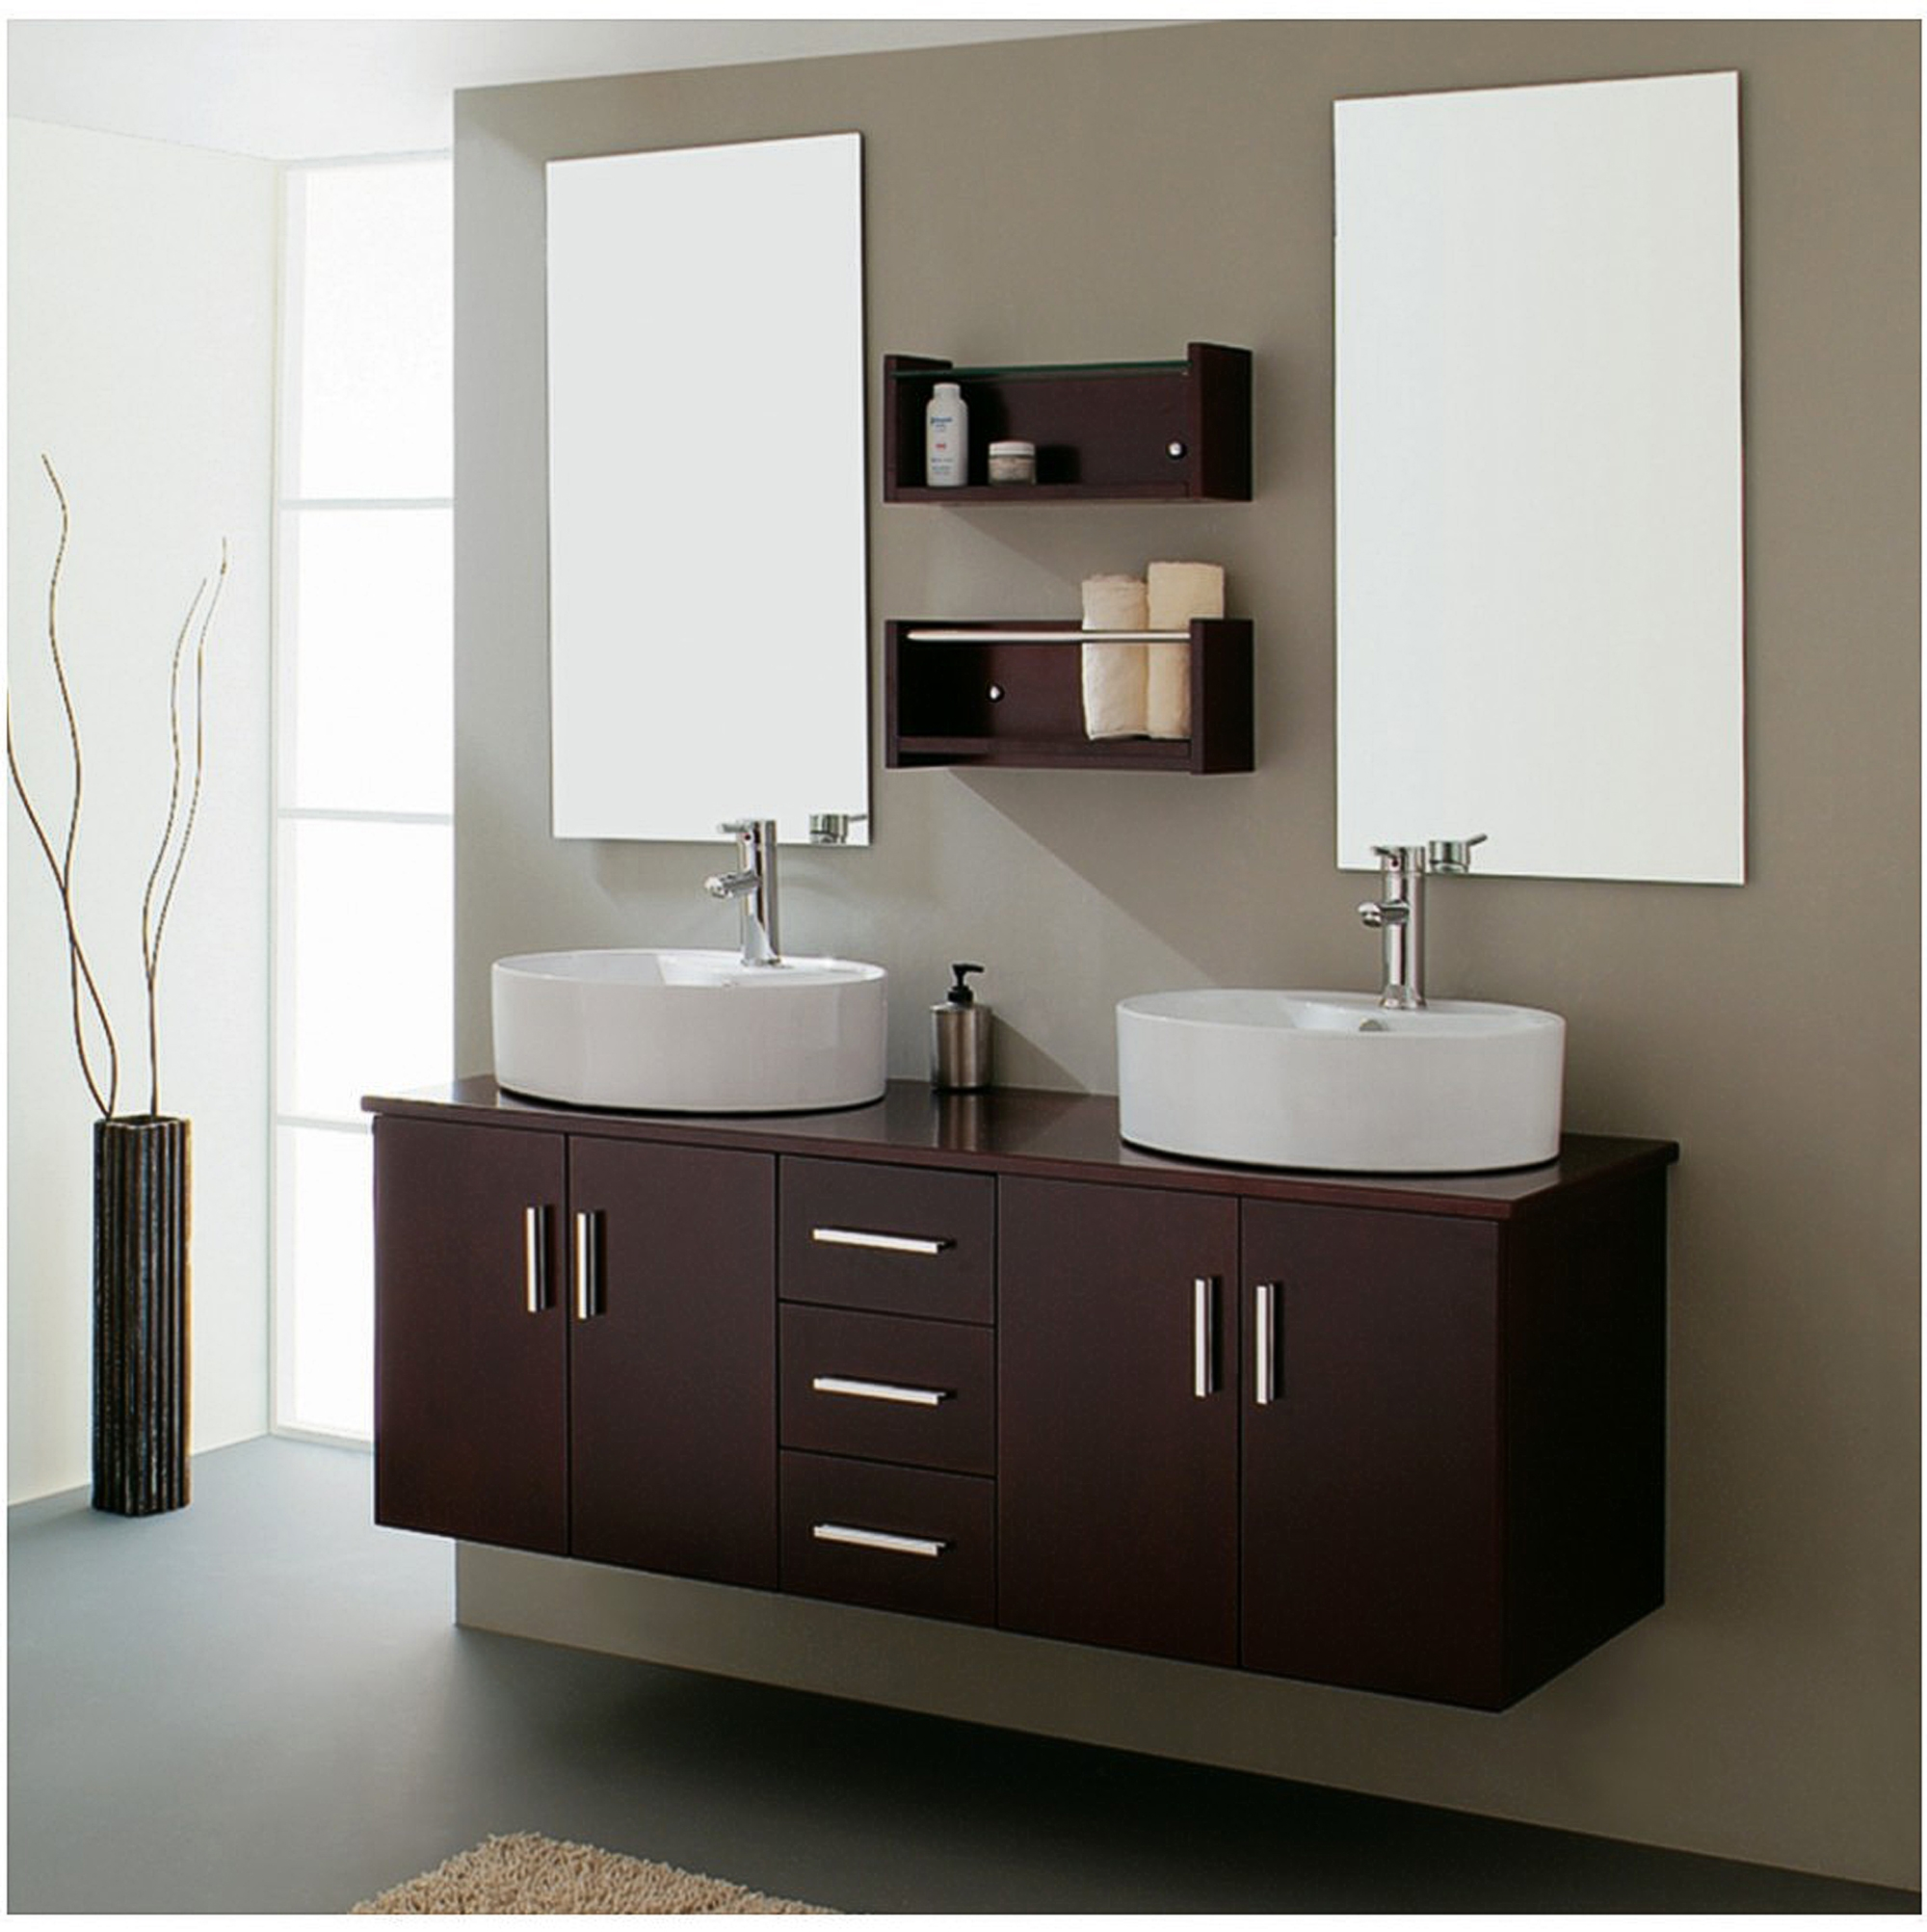 Bathroom Wall Cabinets Dark Brown